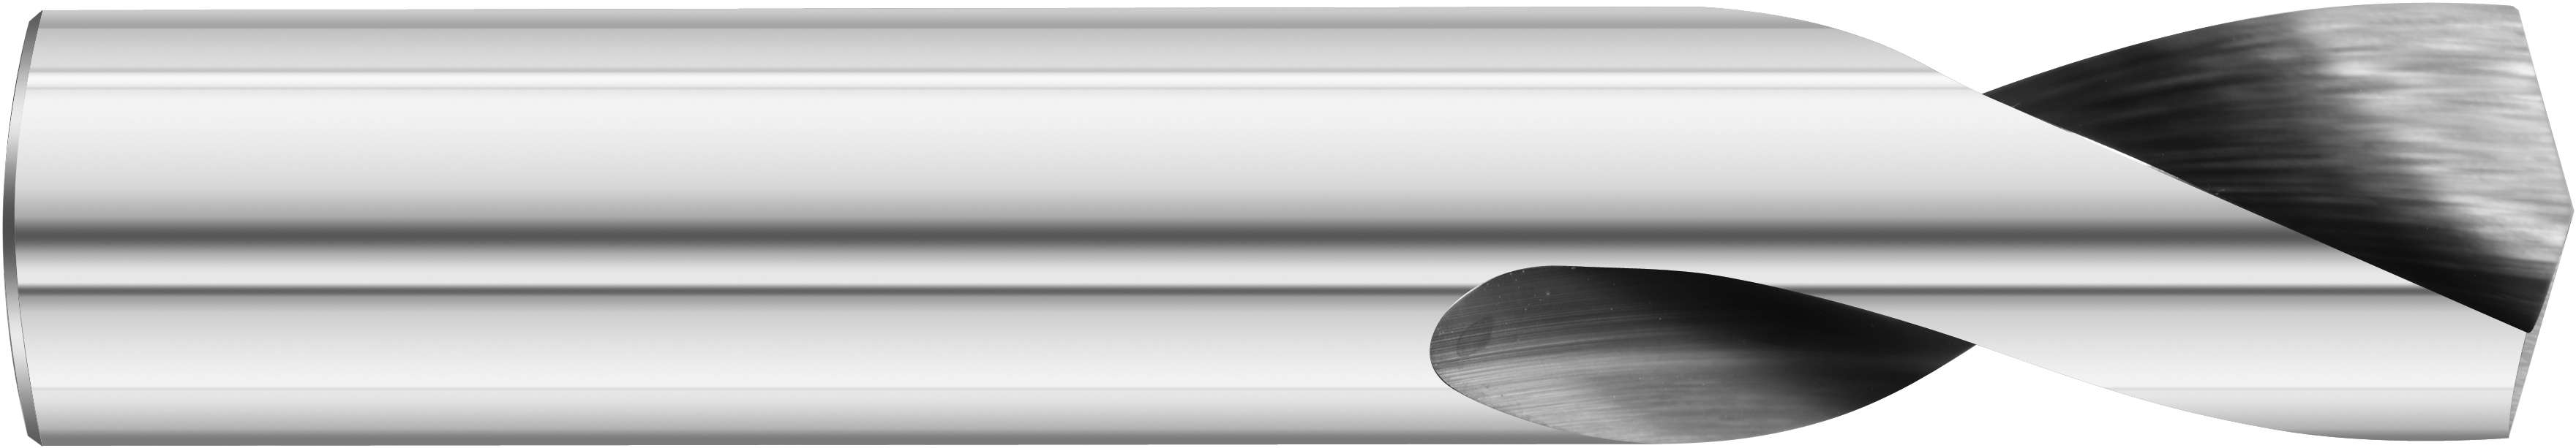 3/16 Solid Carbide Nc Spotting Dril 5xd Length Cam Relieved Se – 15758